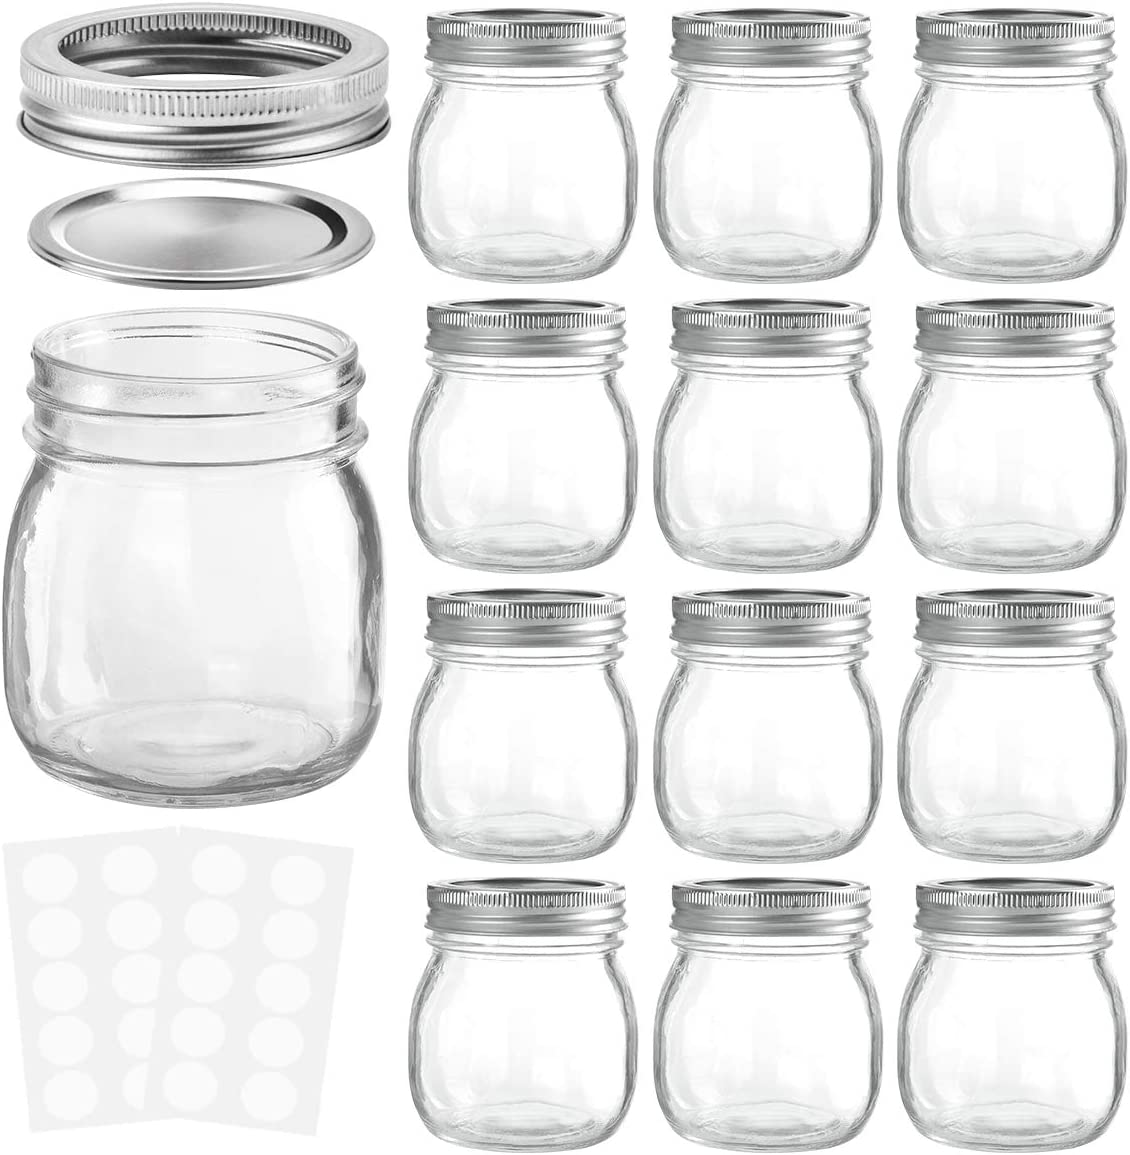 KAMOTA Mason Jars 10OZ With Regular Lids and Bands, Ideal for Jam, Honey, Wedding Favors, Shower Favors, Baby Foods, DIY Magnetic Spice Jars, 12 PACK, 20 Whiteboard Labels Included